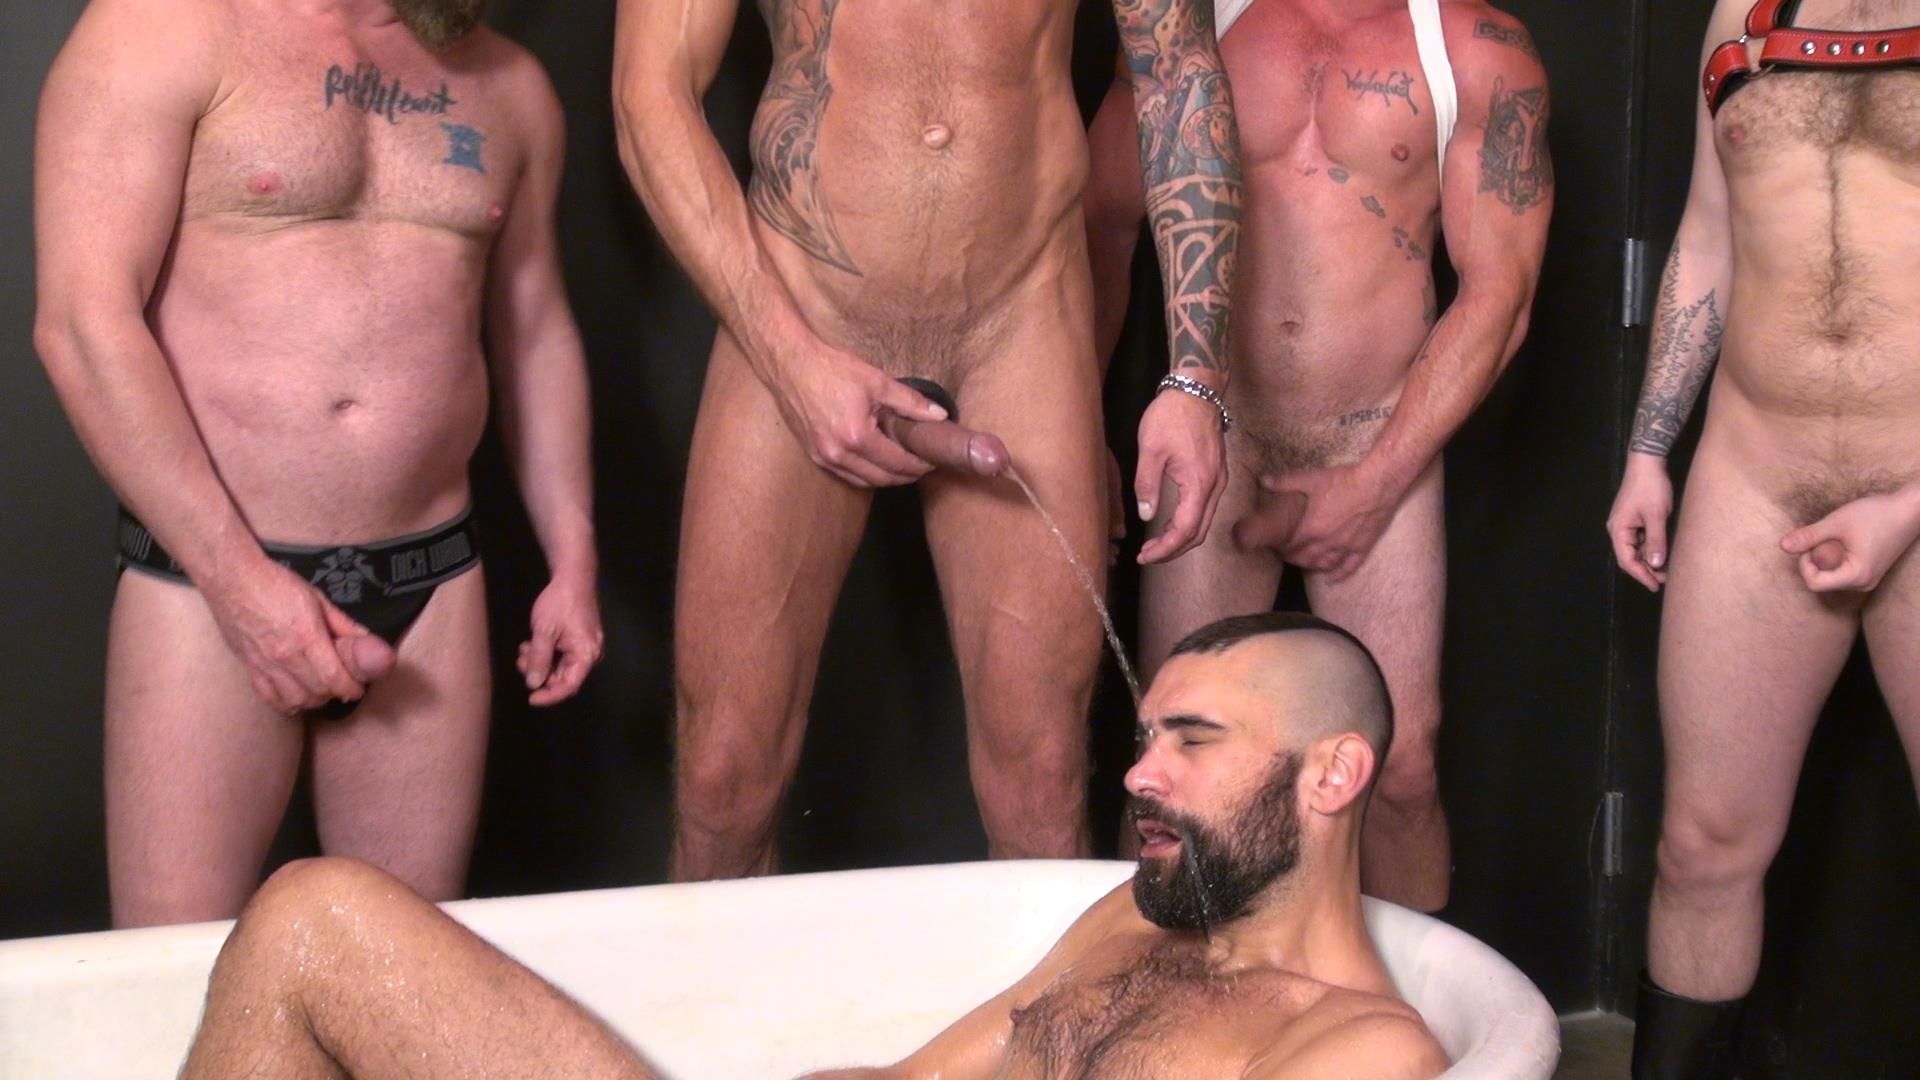 pissing gay boys escort gay sex